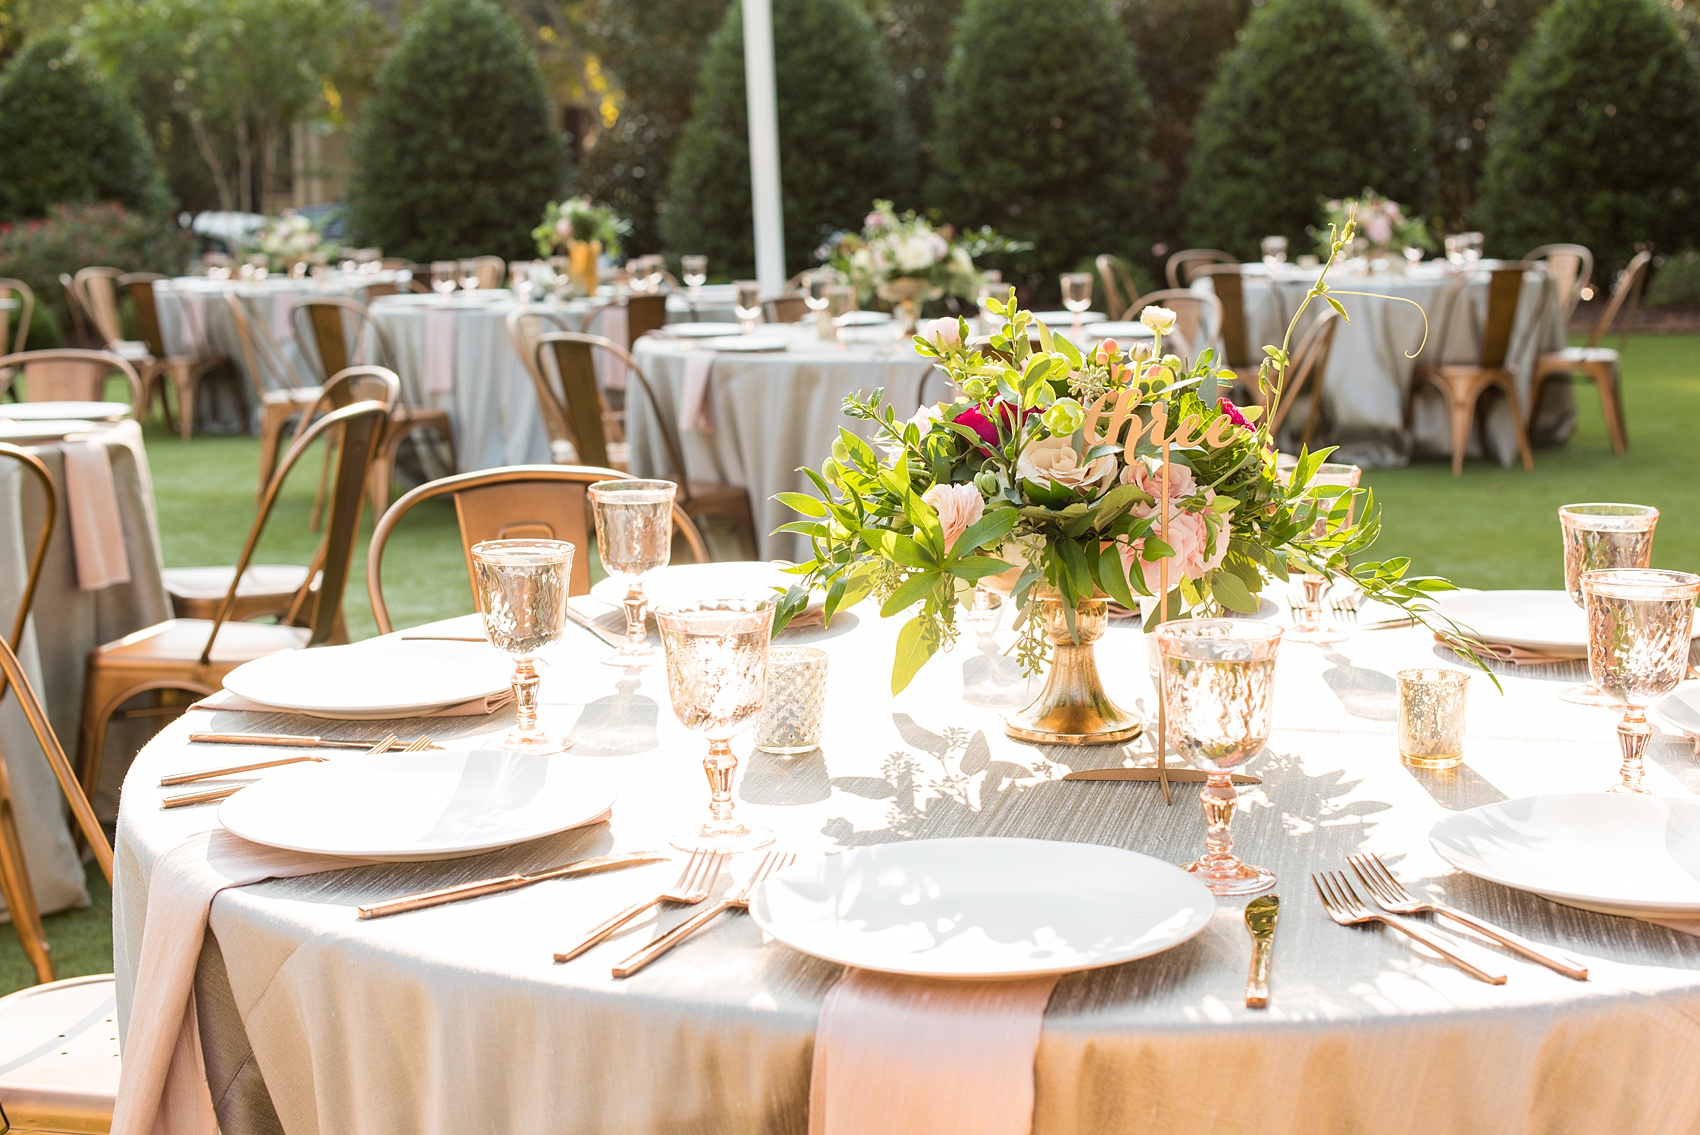 Mikkel Paige Photography pictures from a wedding at Merrimon-Wynne House in Raleigh, NC. Photo of the table centerpieces with geometric glass candle holders, script gold numbers, copper flatware, and pink glasses.